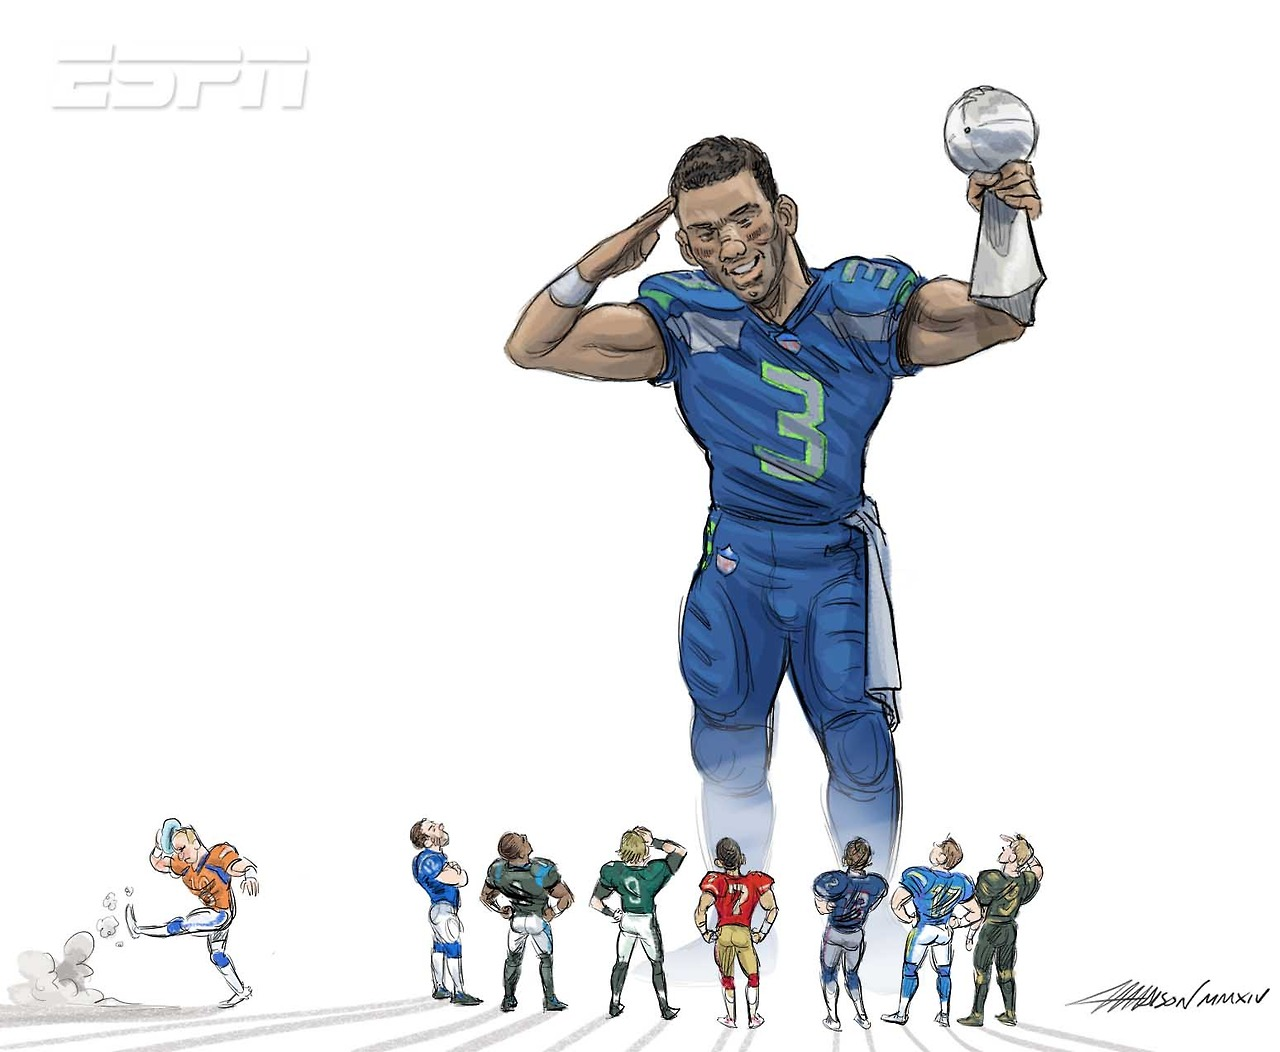 Seattle Seahawks QB Russell Wilson holding up the trophy via Austin Madison Pixar Aritst